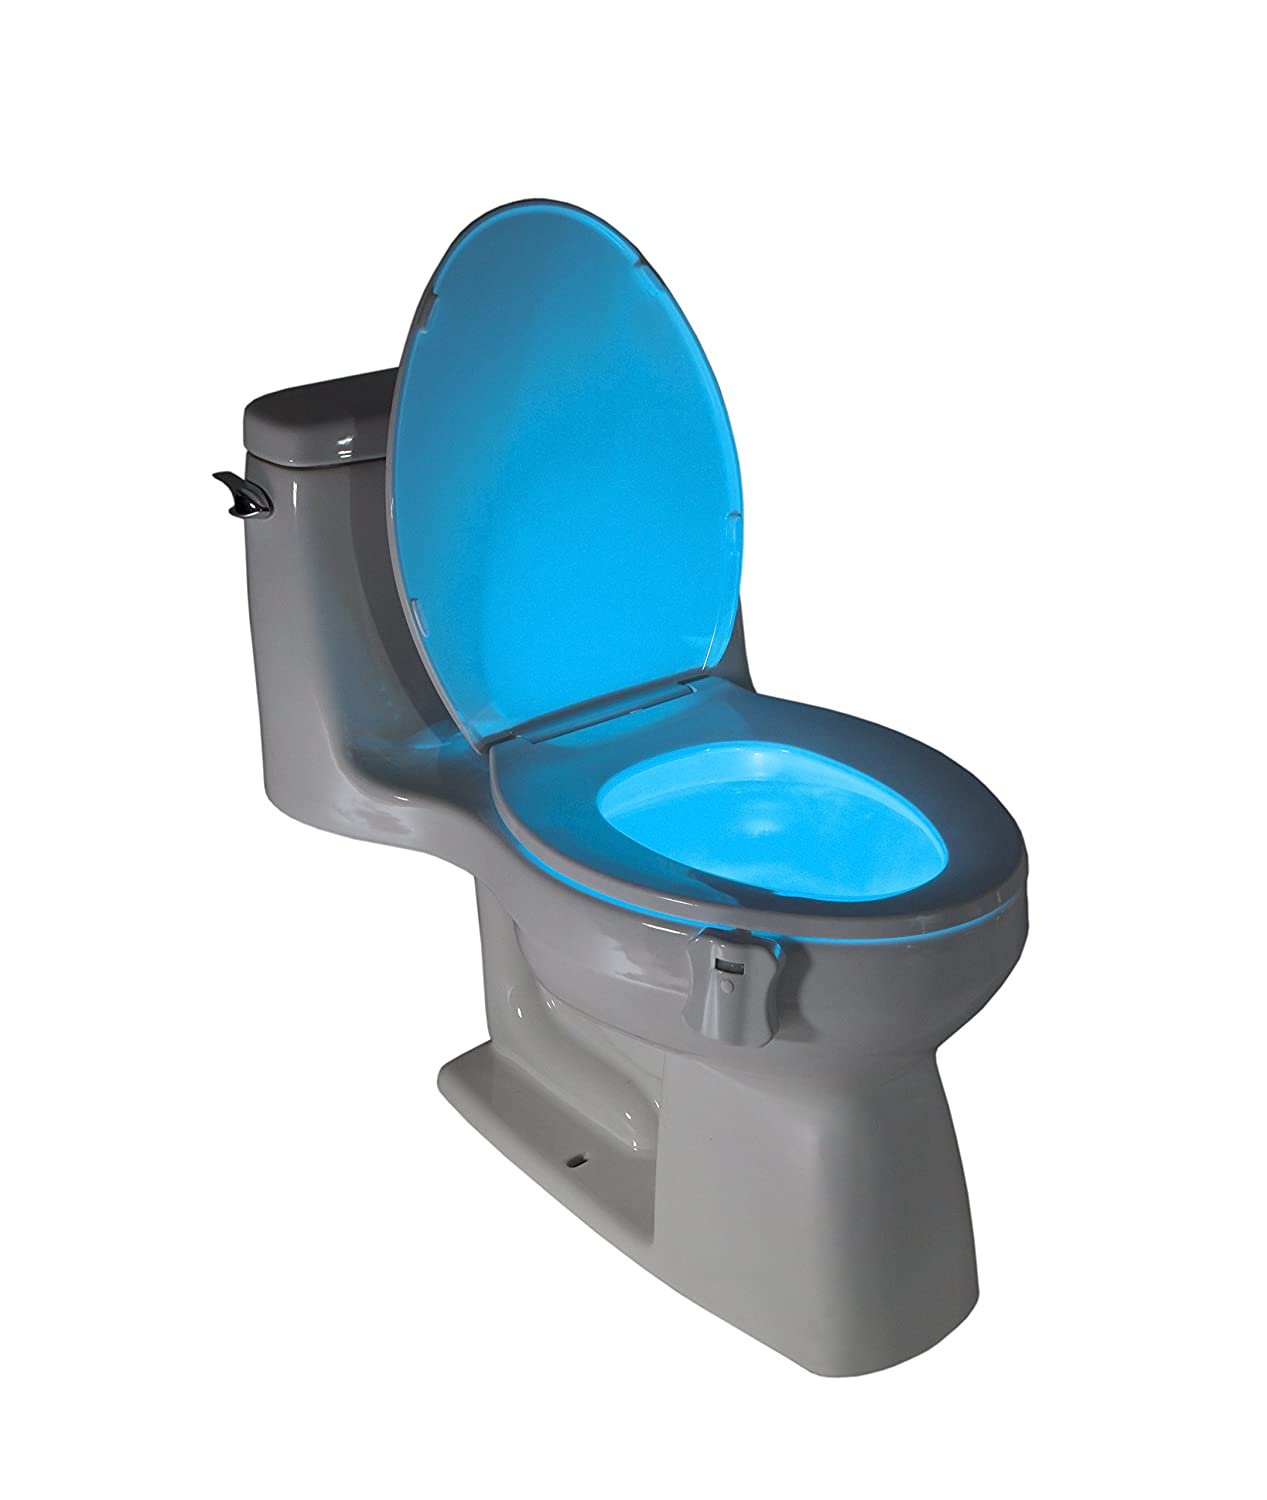 Top 10 Best Soft Close Toilet Seat Reviews 2018-2020 on Flipboard